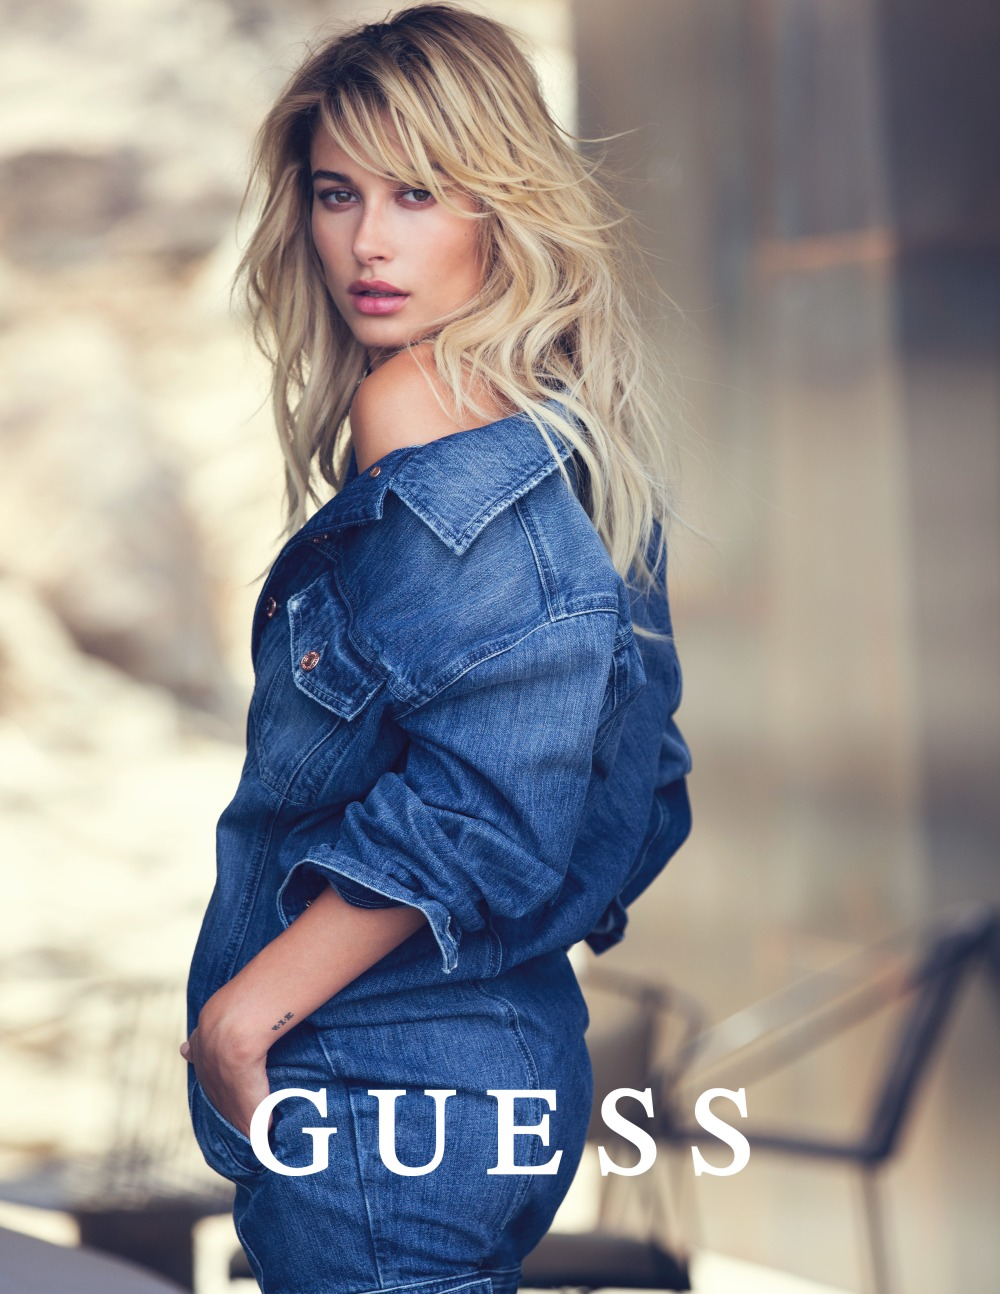 guess-jeans-holiday-2016-photography-by-david-bellemre-at-thomas-treuhfa-3